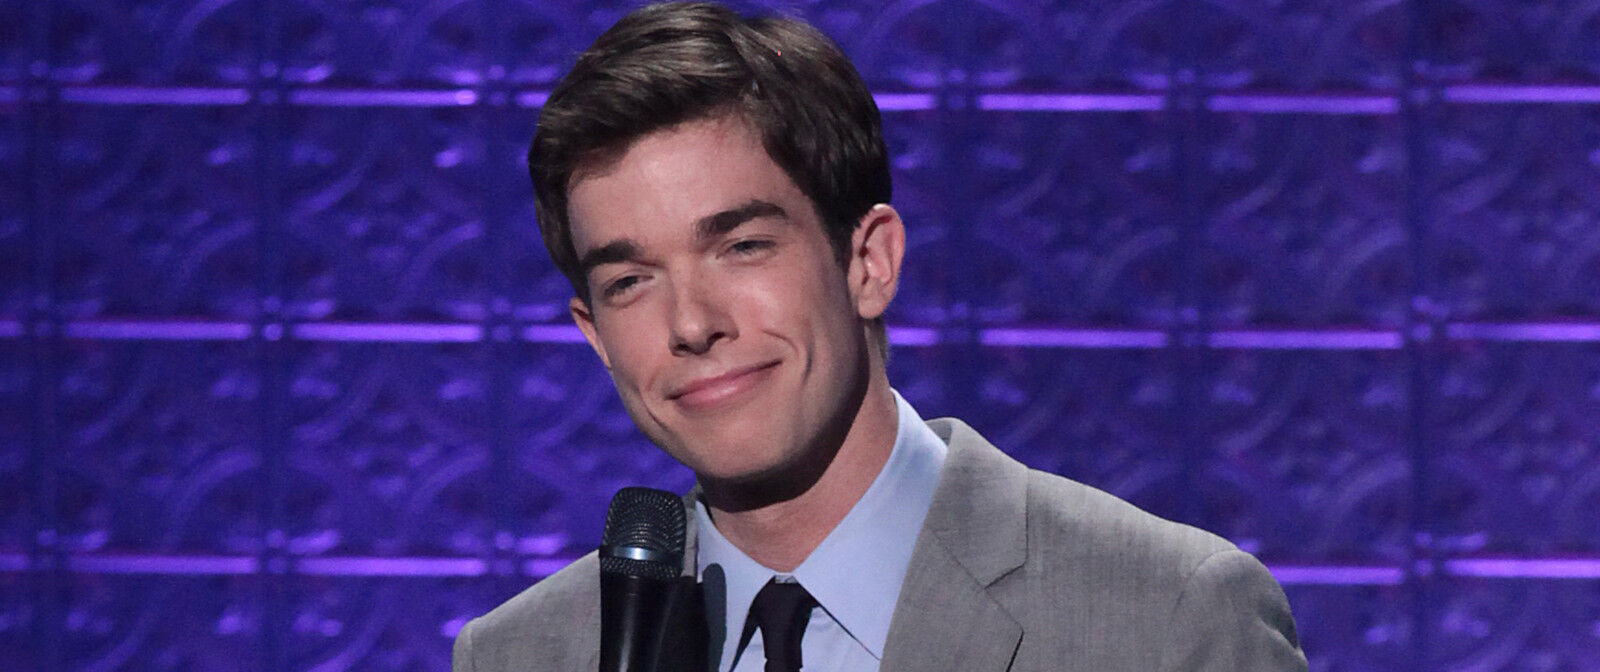 PARKING PASSES ONLY John Mulaney